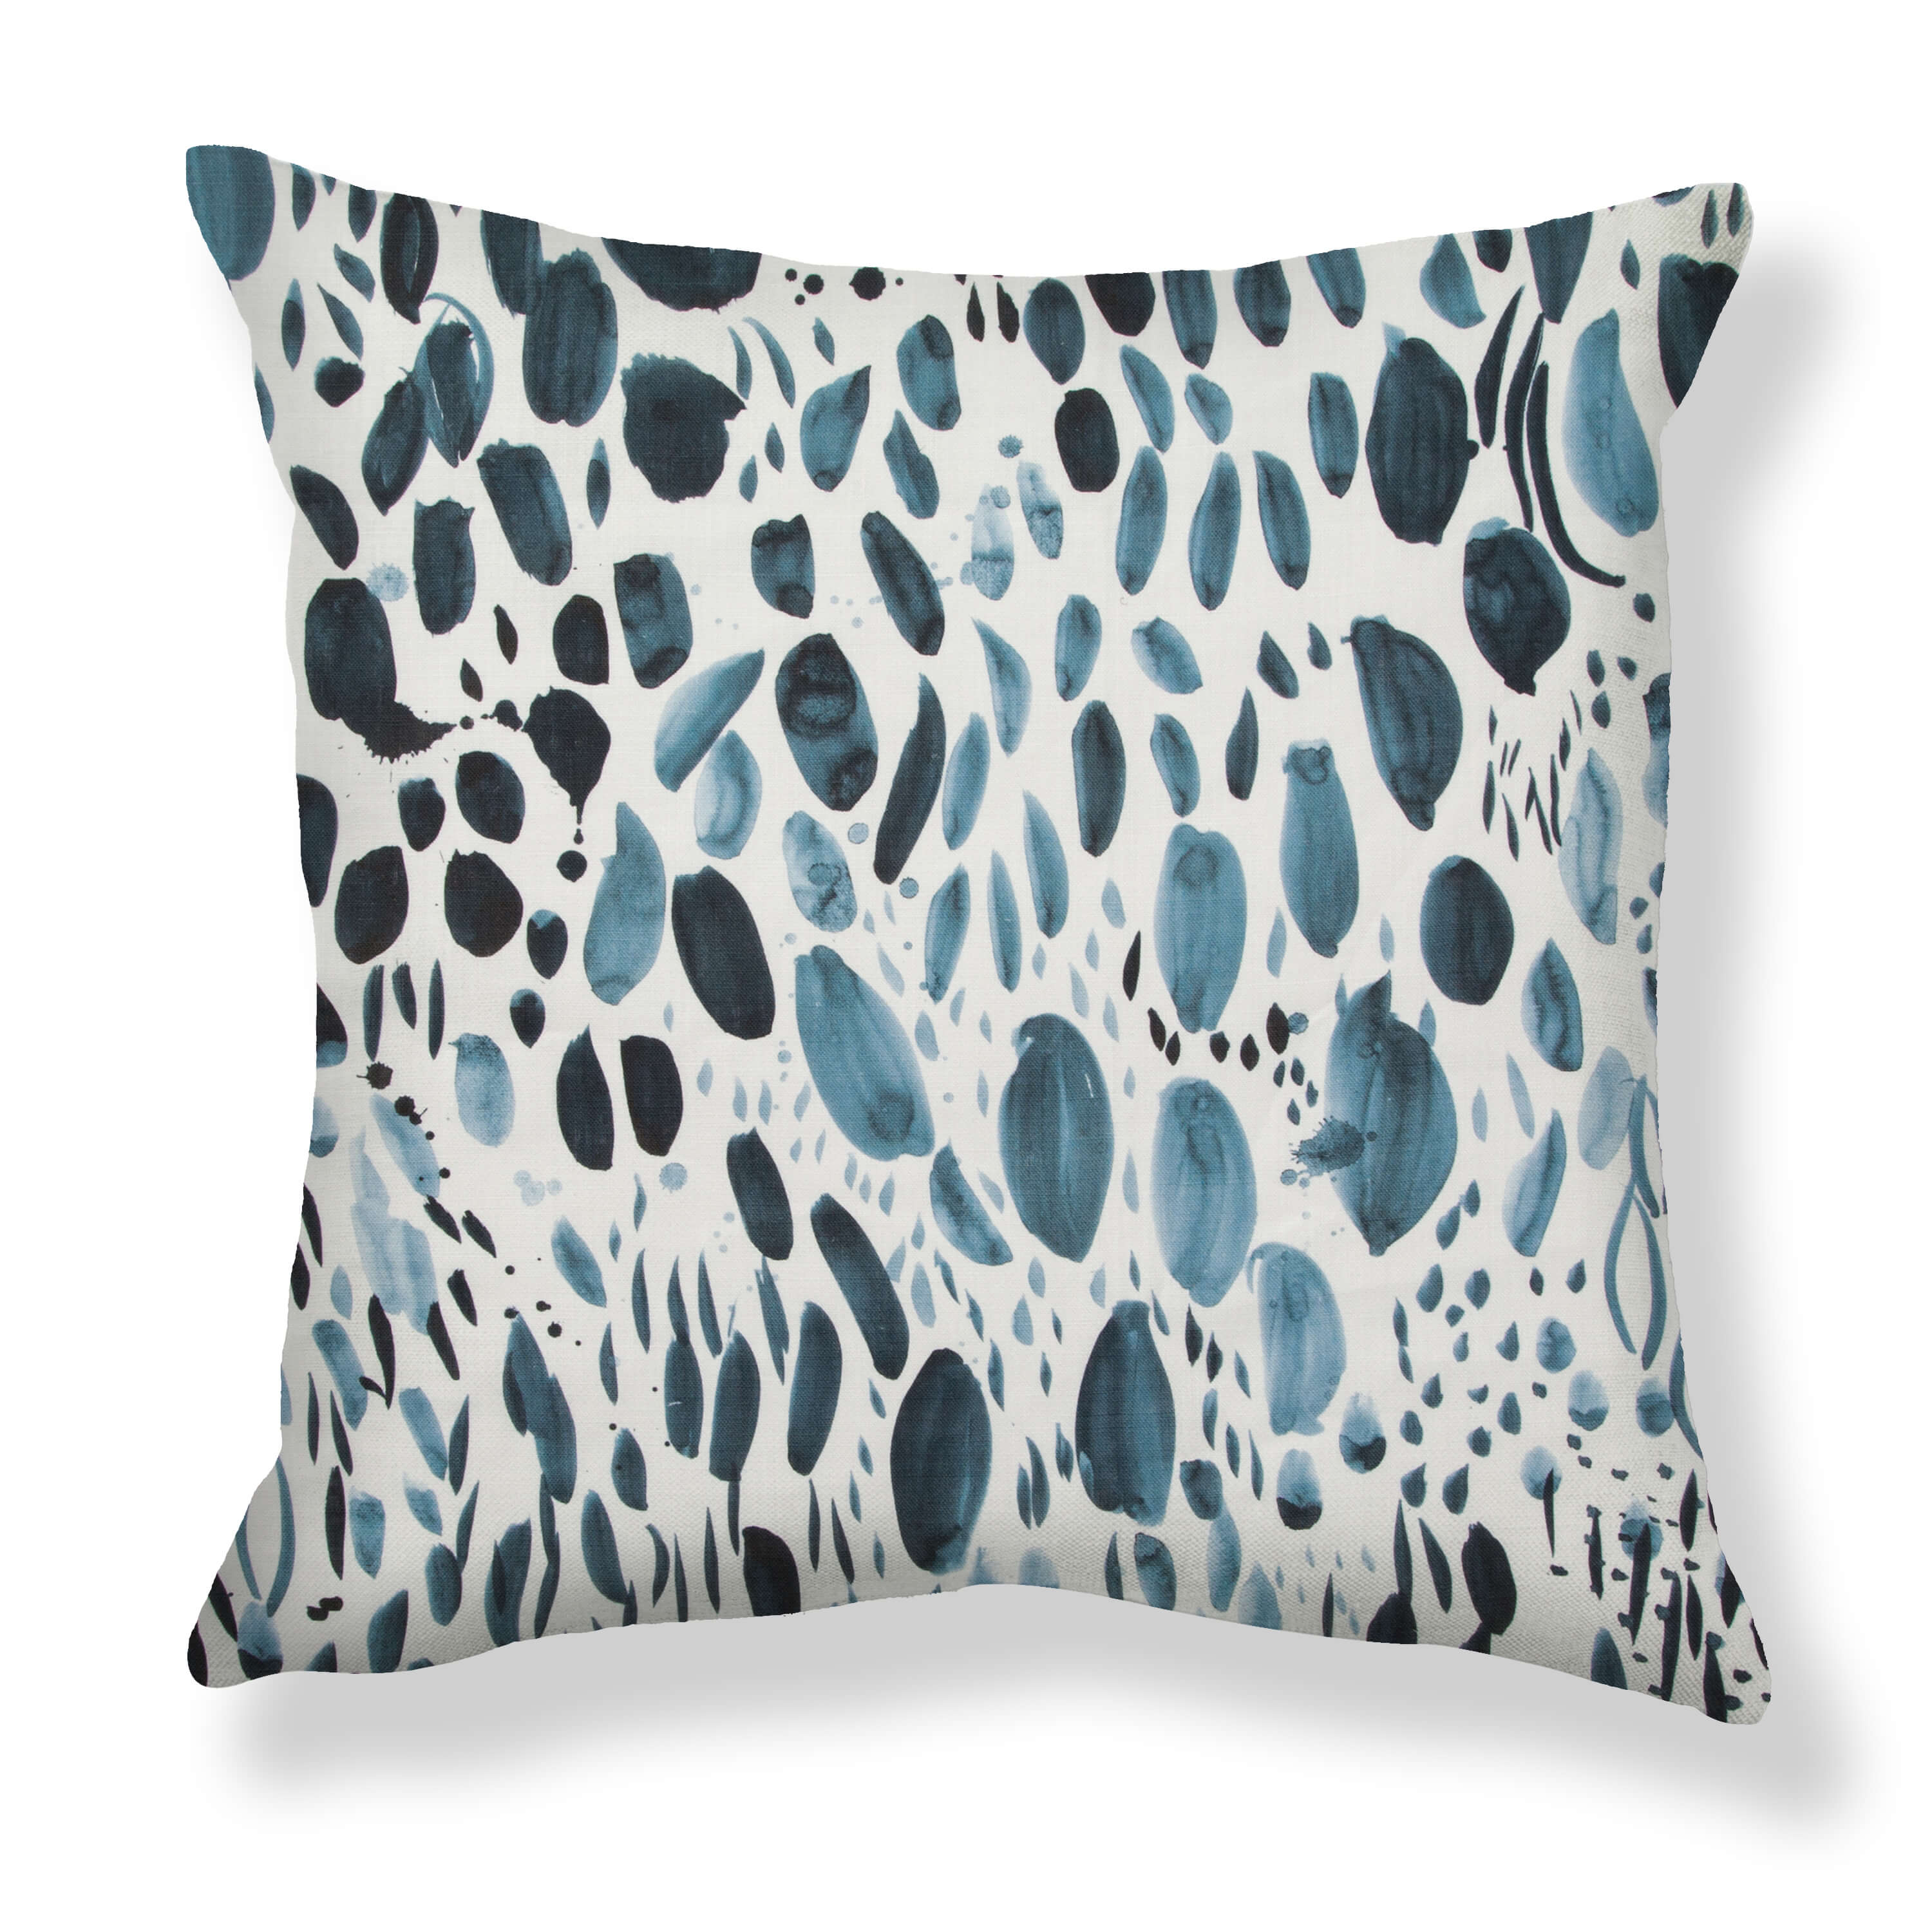 Blooms Pillows in Navy